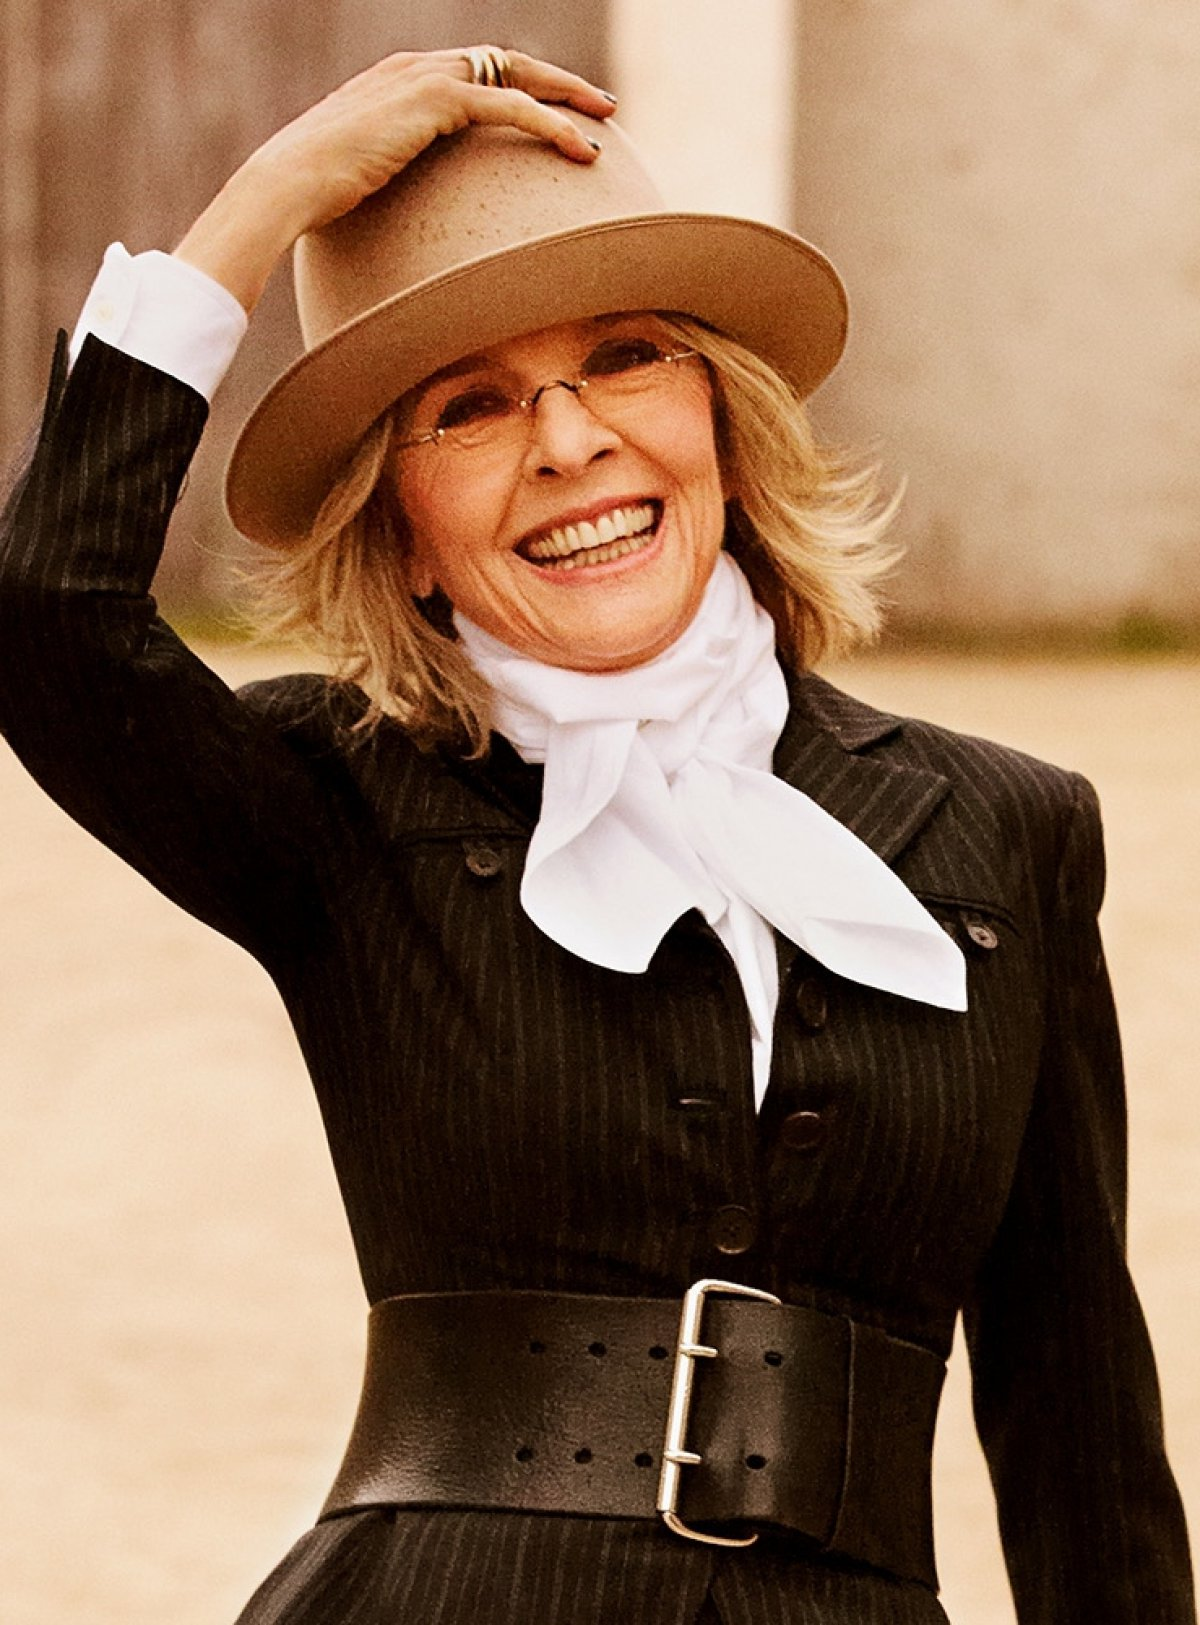 diane keaton gushes over chris martin he 39 s gorgeous reality tv world. Black Bedroom Furniture Sets. Home Design Ideas